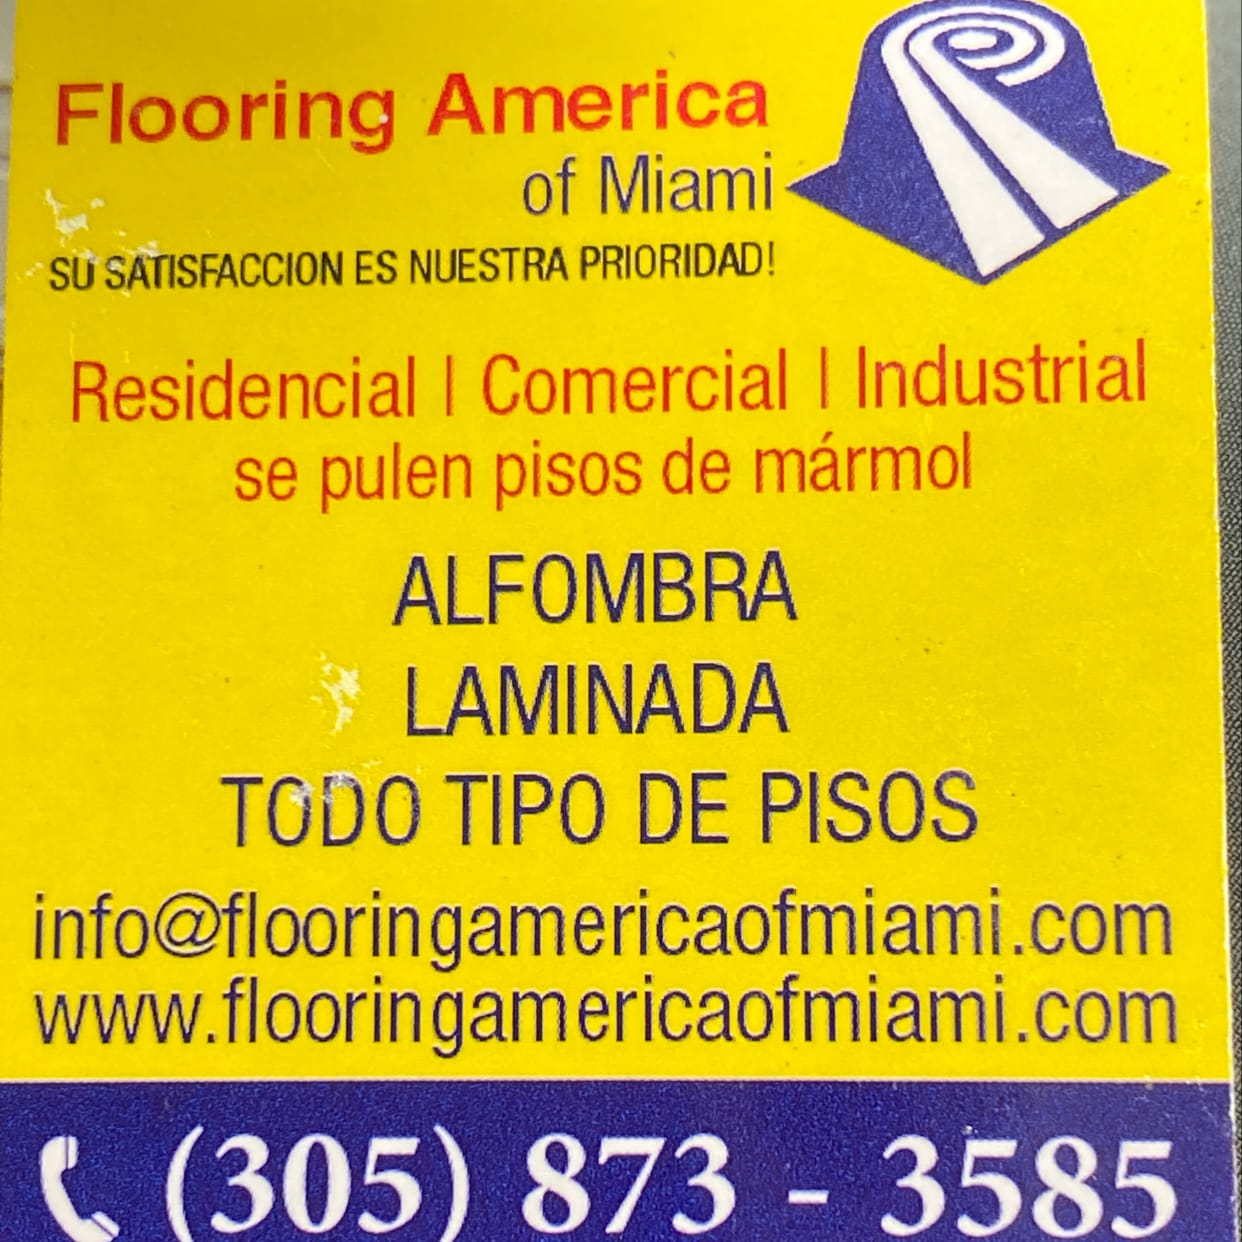 Flooring America of Miami